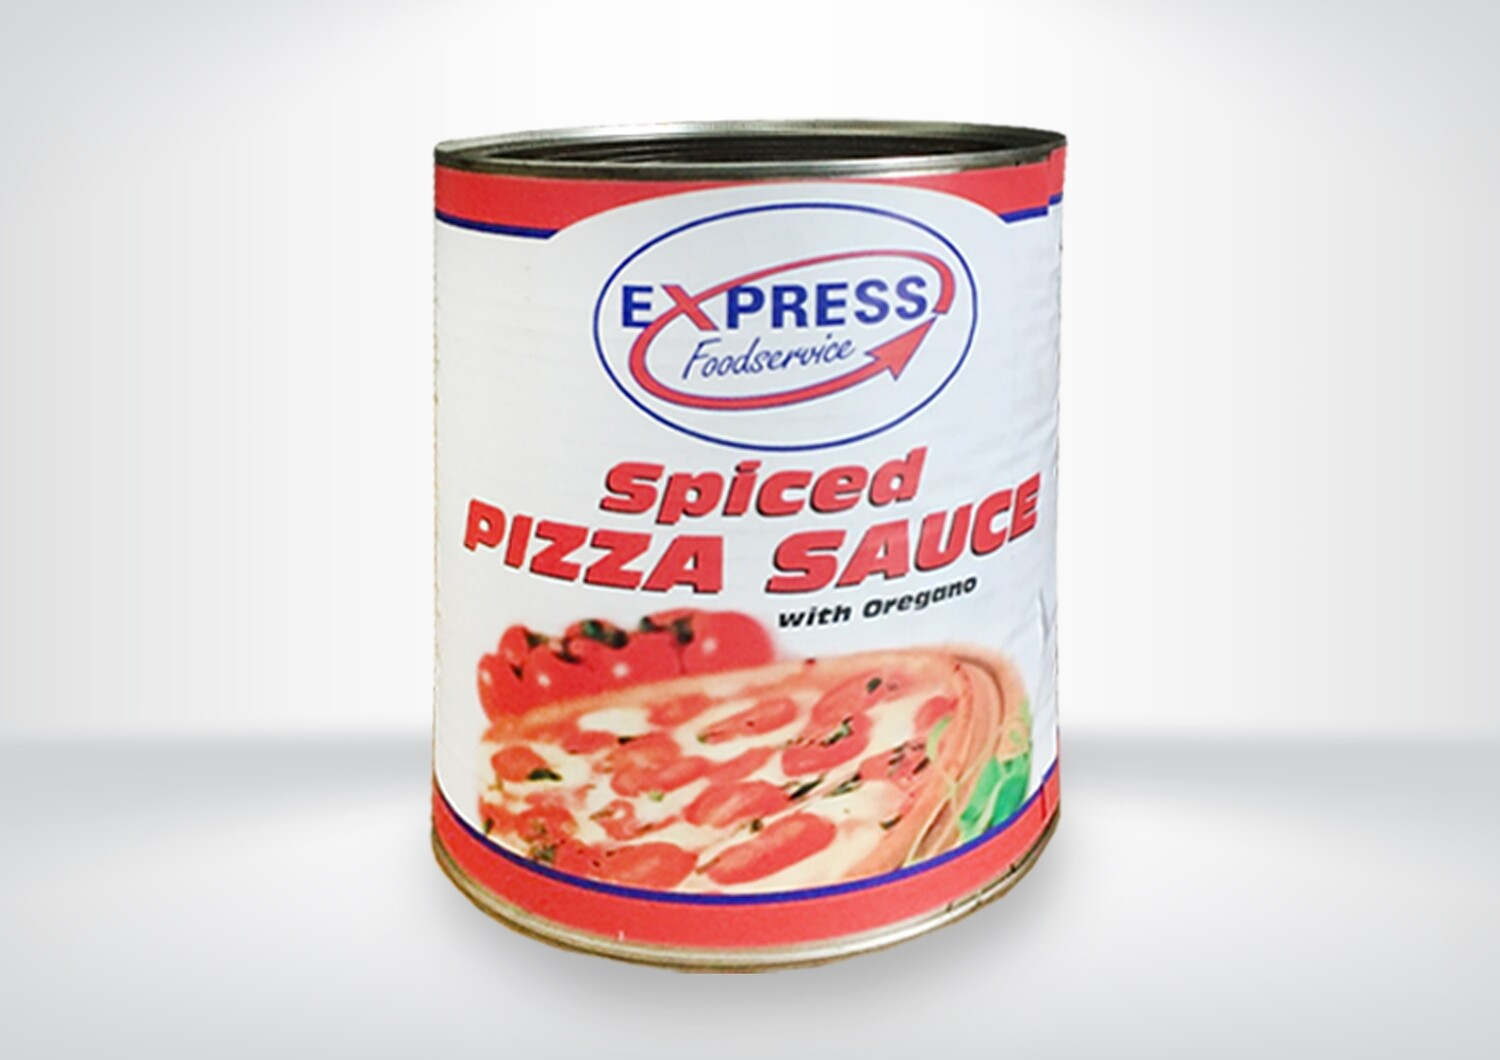 Express Spiced Pizza Sauce